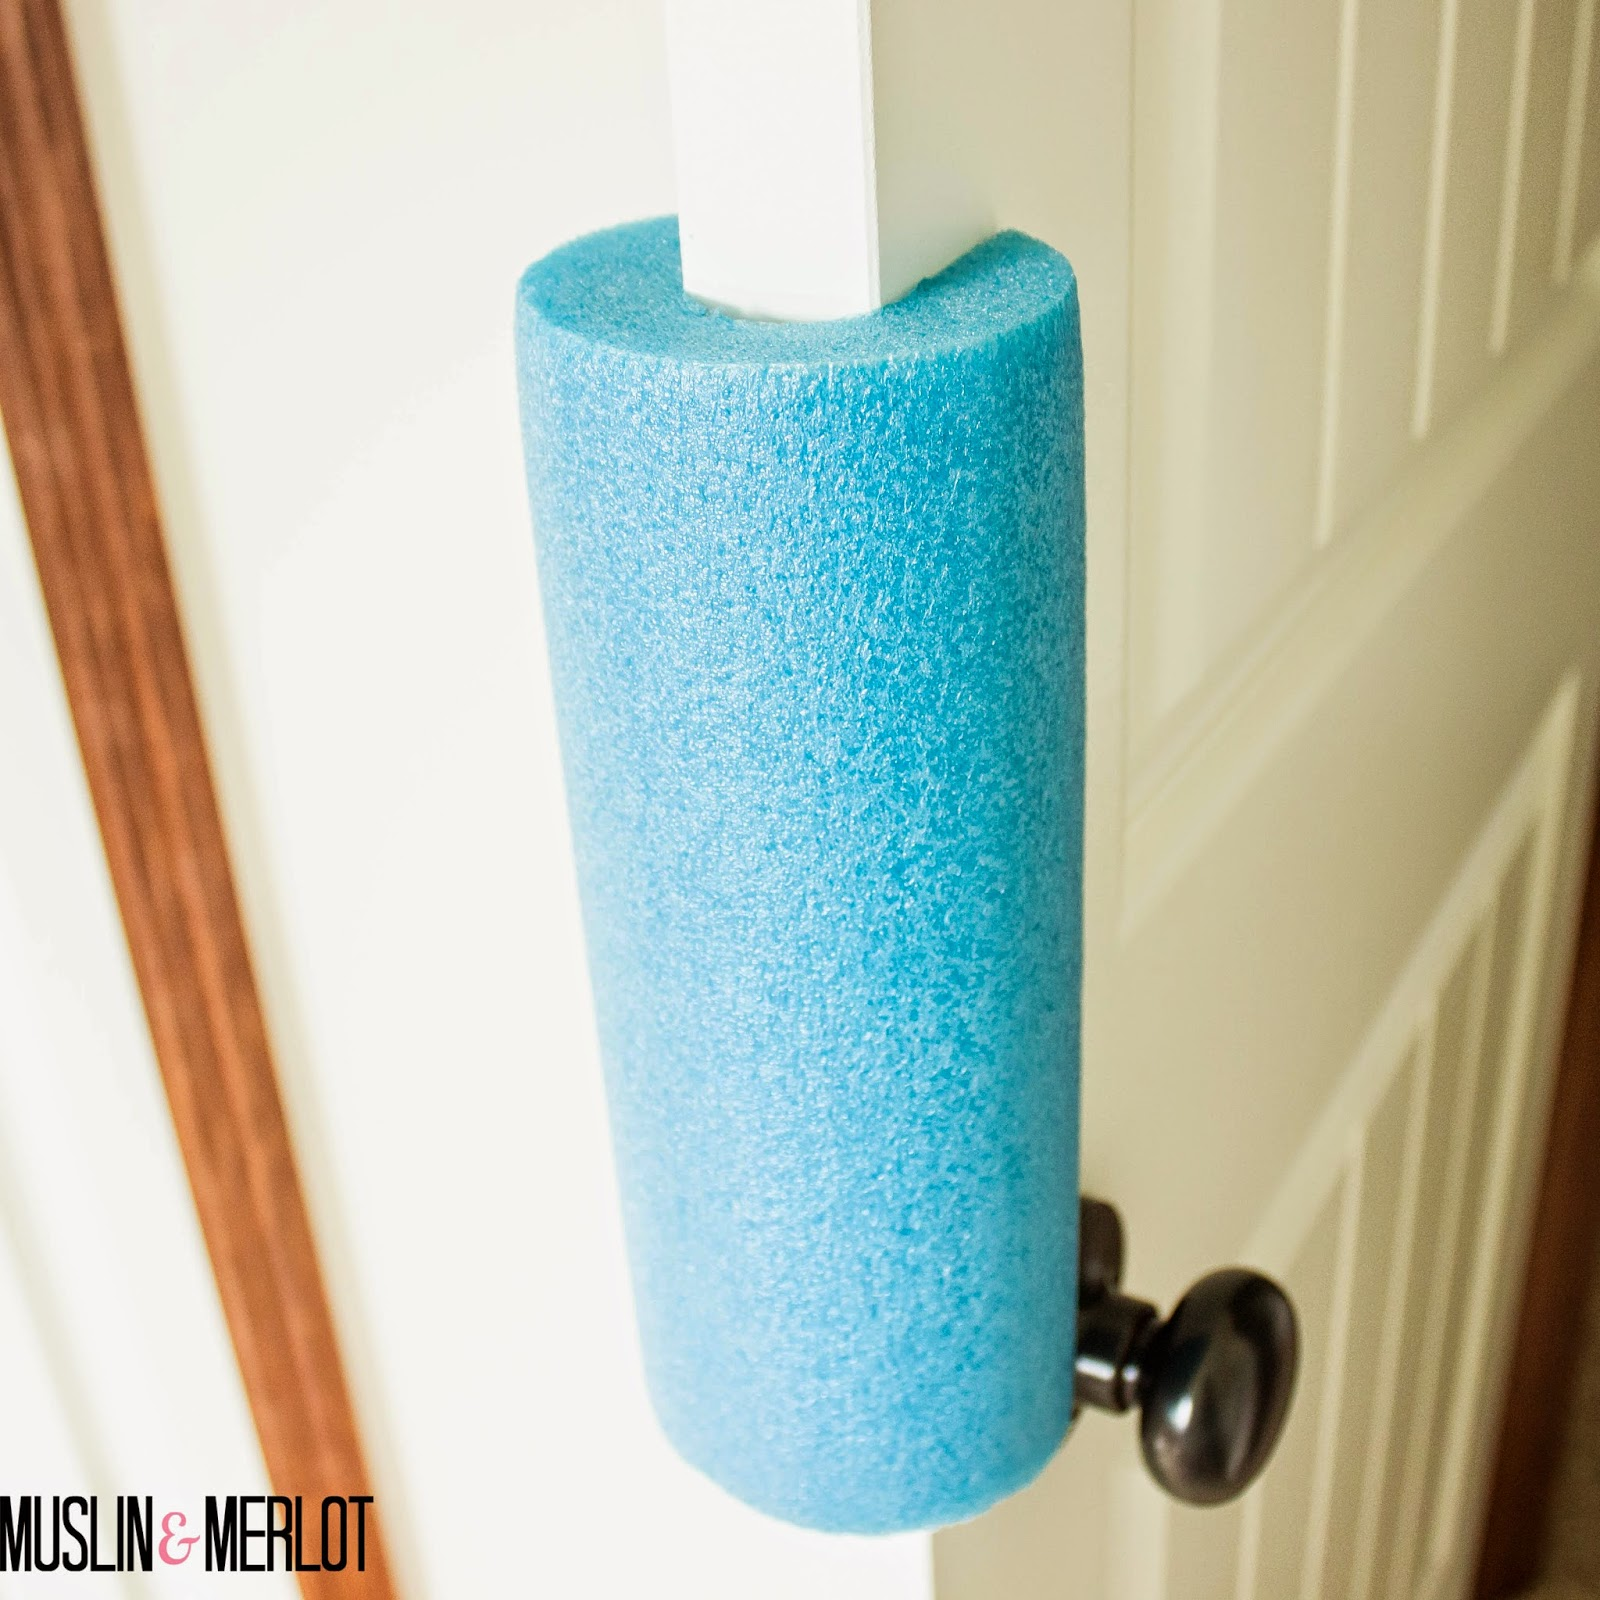 Old Pool Noodles, Old Pool Noodle Crafts, Crafts for Kids, Things to Do With Old Pool Noodles, Crafts, Crafting Tips and Tricks, DIY Projects, DIY Home, DIY Crafts, Crafts for Kids, Popular